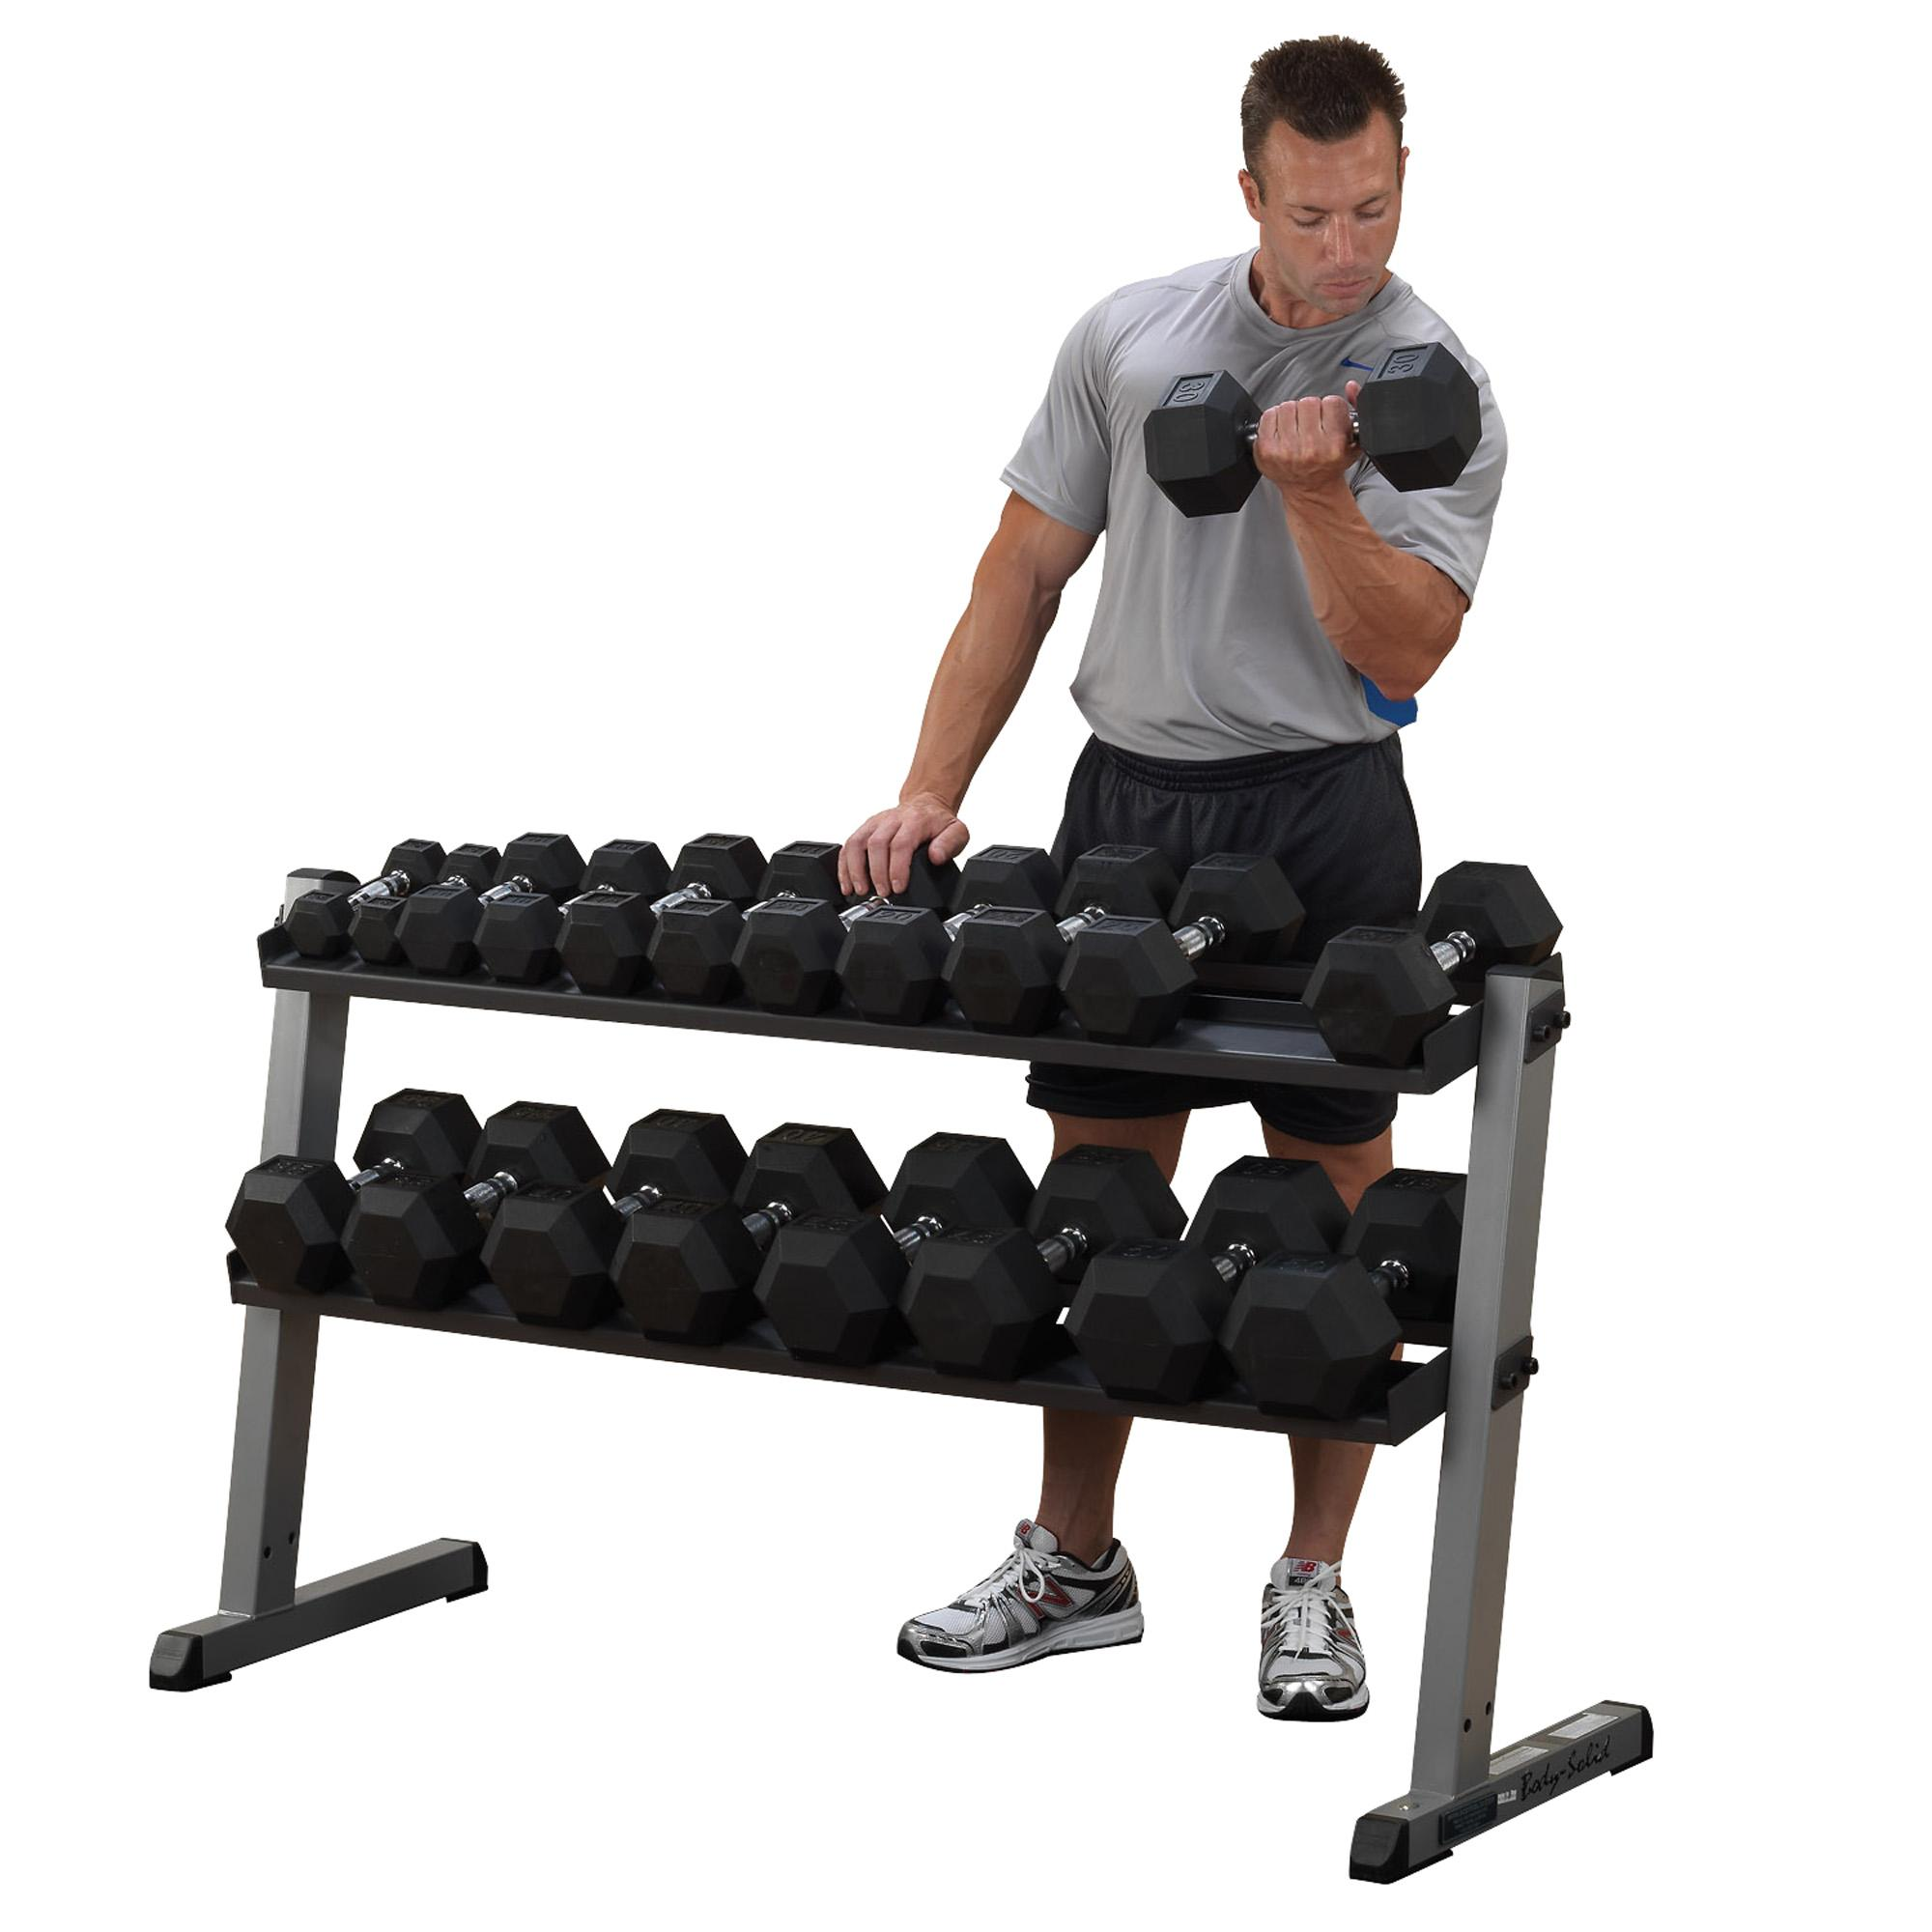 from gym leg equipment and machines authority fitness azfitnessequipmentcom sport marbo products made free press machine weight plate sports shop by loaded bench